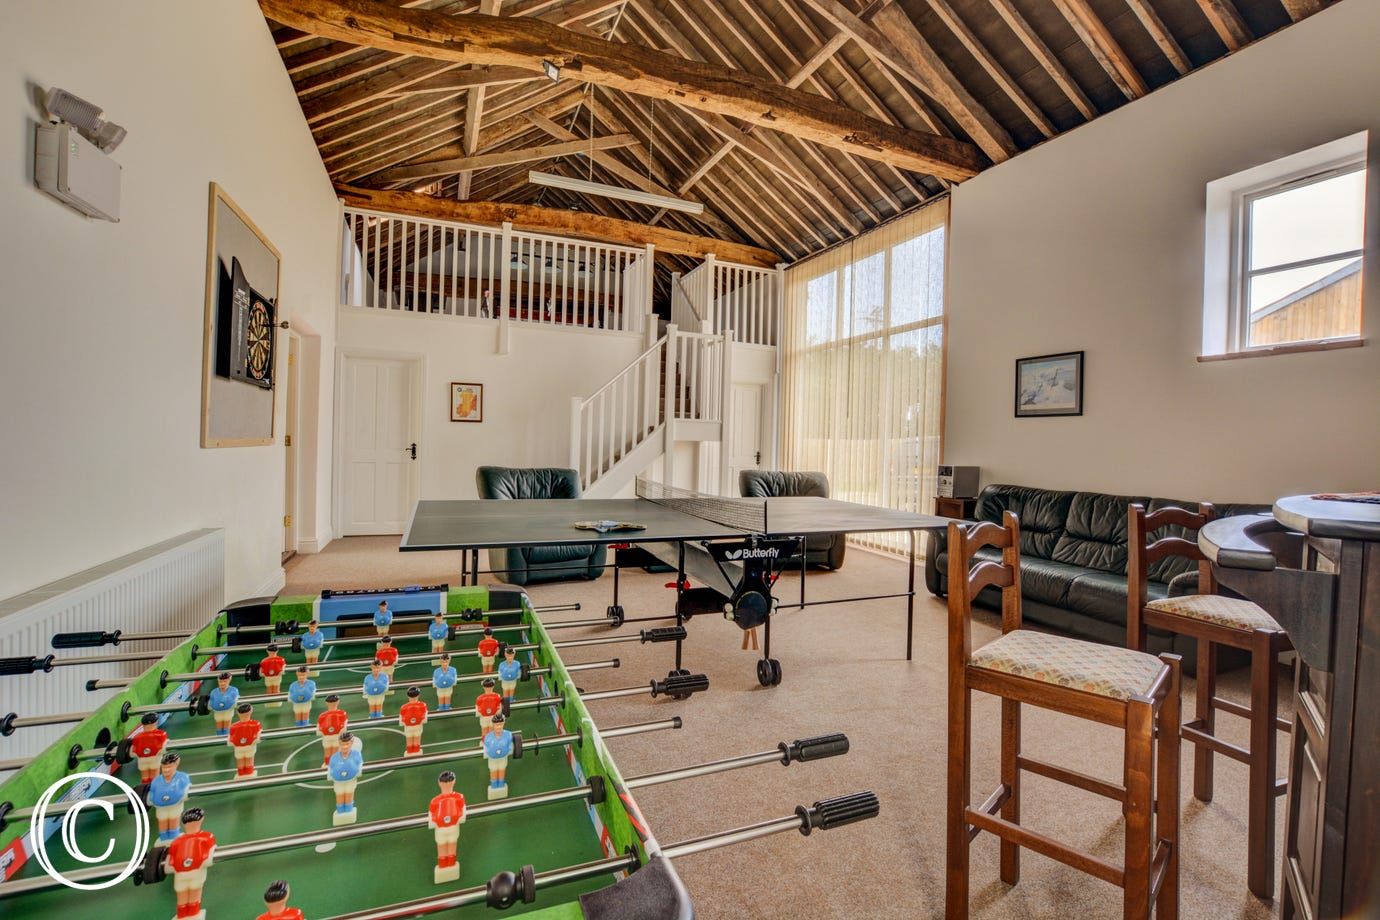 Games Room showing table tennis table and table football